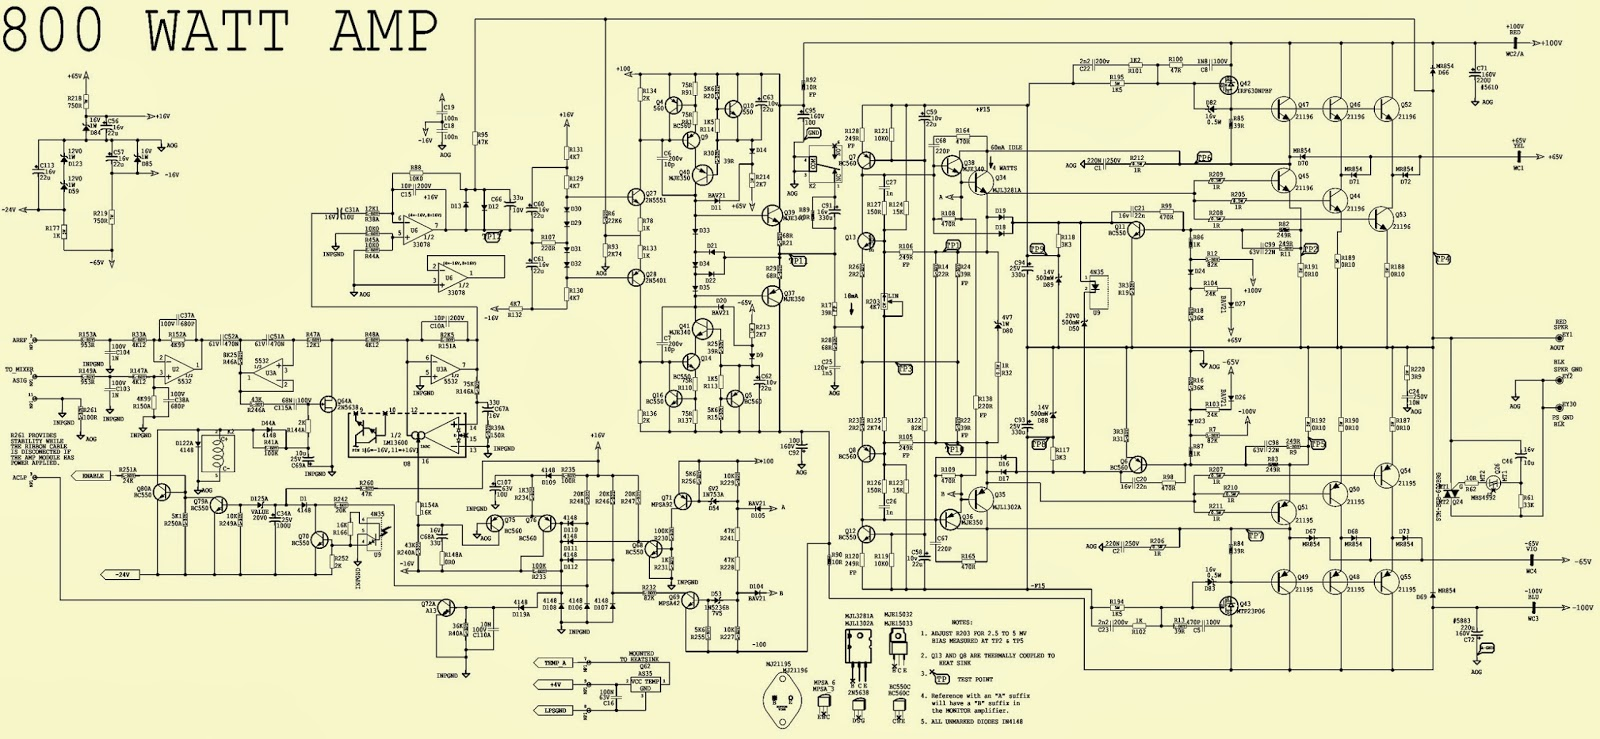 draw your wiring 800watts amplifier circuit diagram800watts amplifier circuit diagram 800 watts amp 800watts amplifier circuit diagram